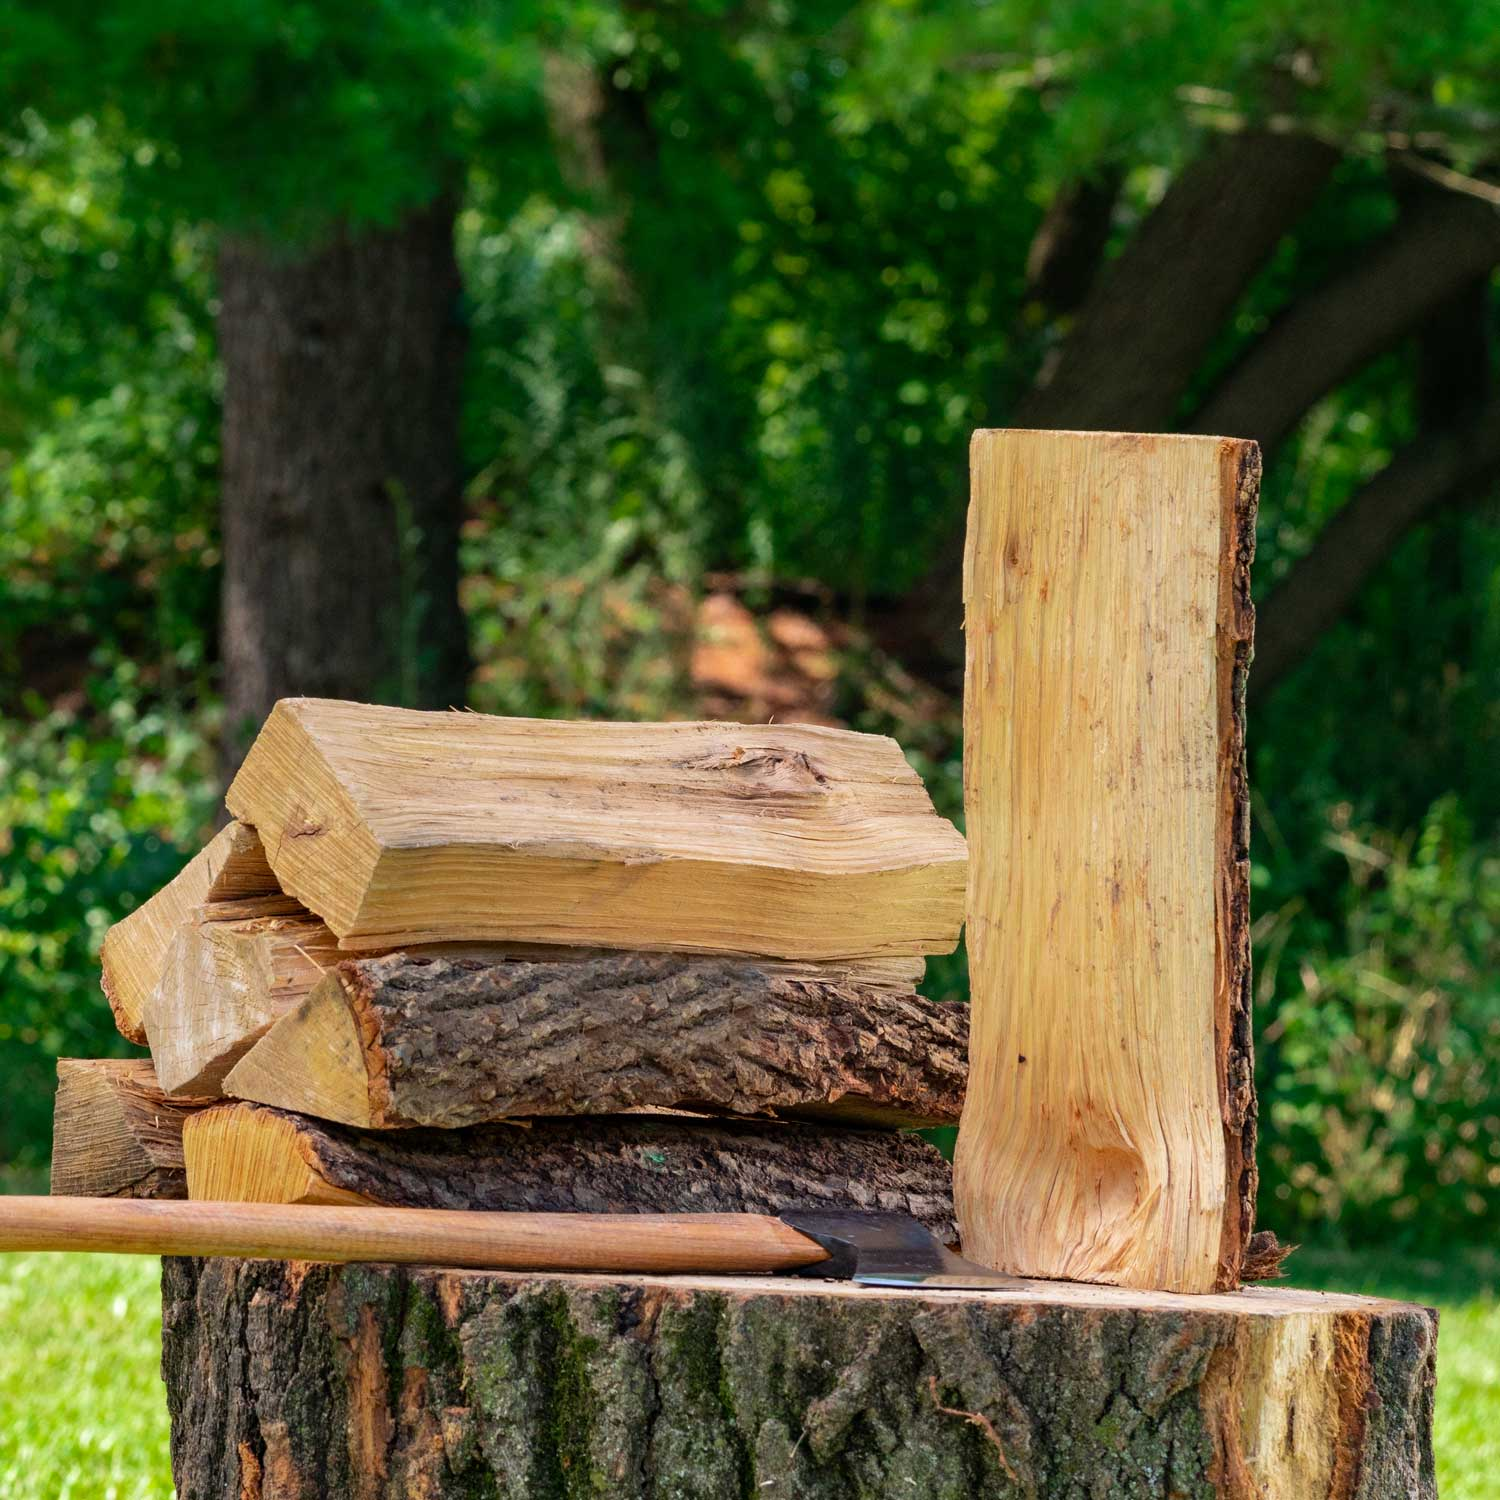 Hickory firewood - $59 $104 $169There are a lot of people who agree that hickory firewood is one of the best there is for burning. Hickory is even hotter burning than oak, maple and other popular woods.